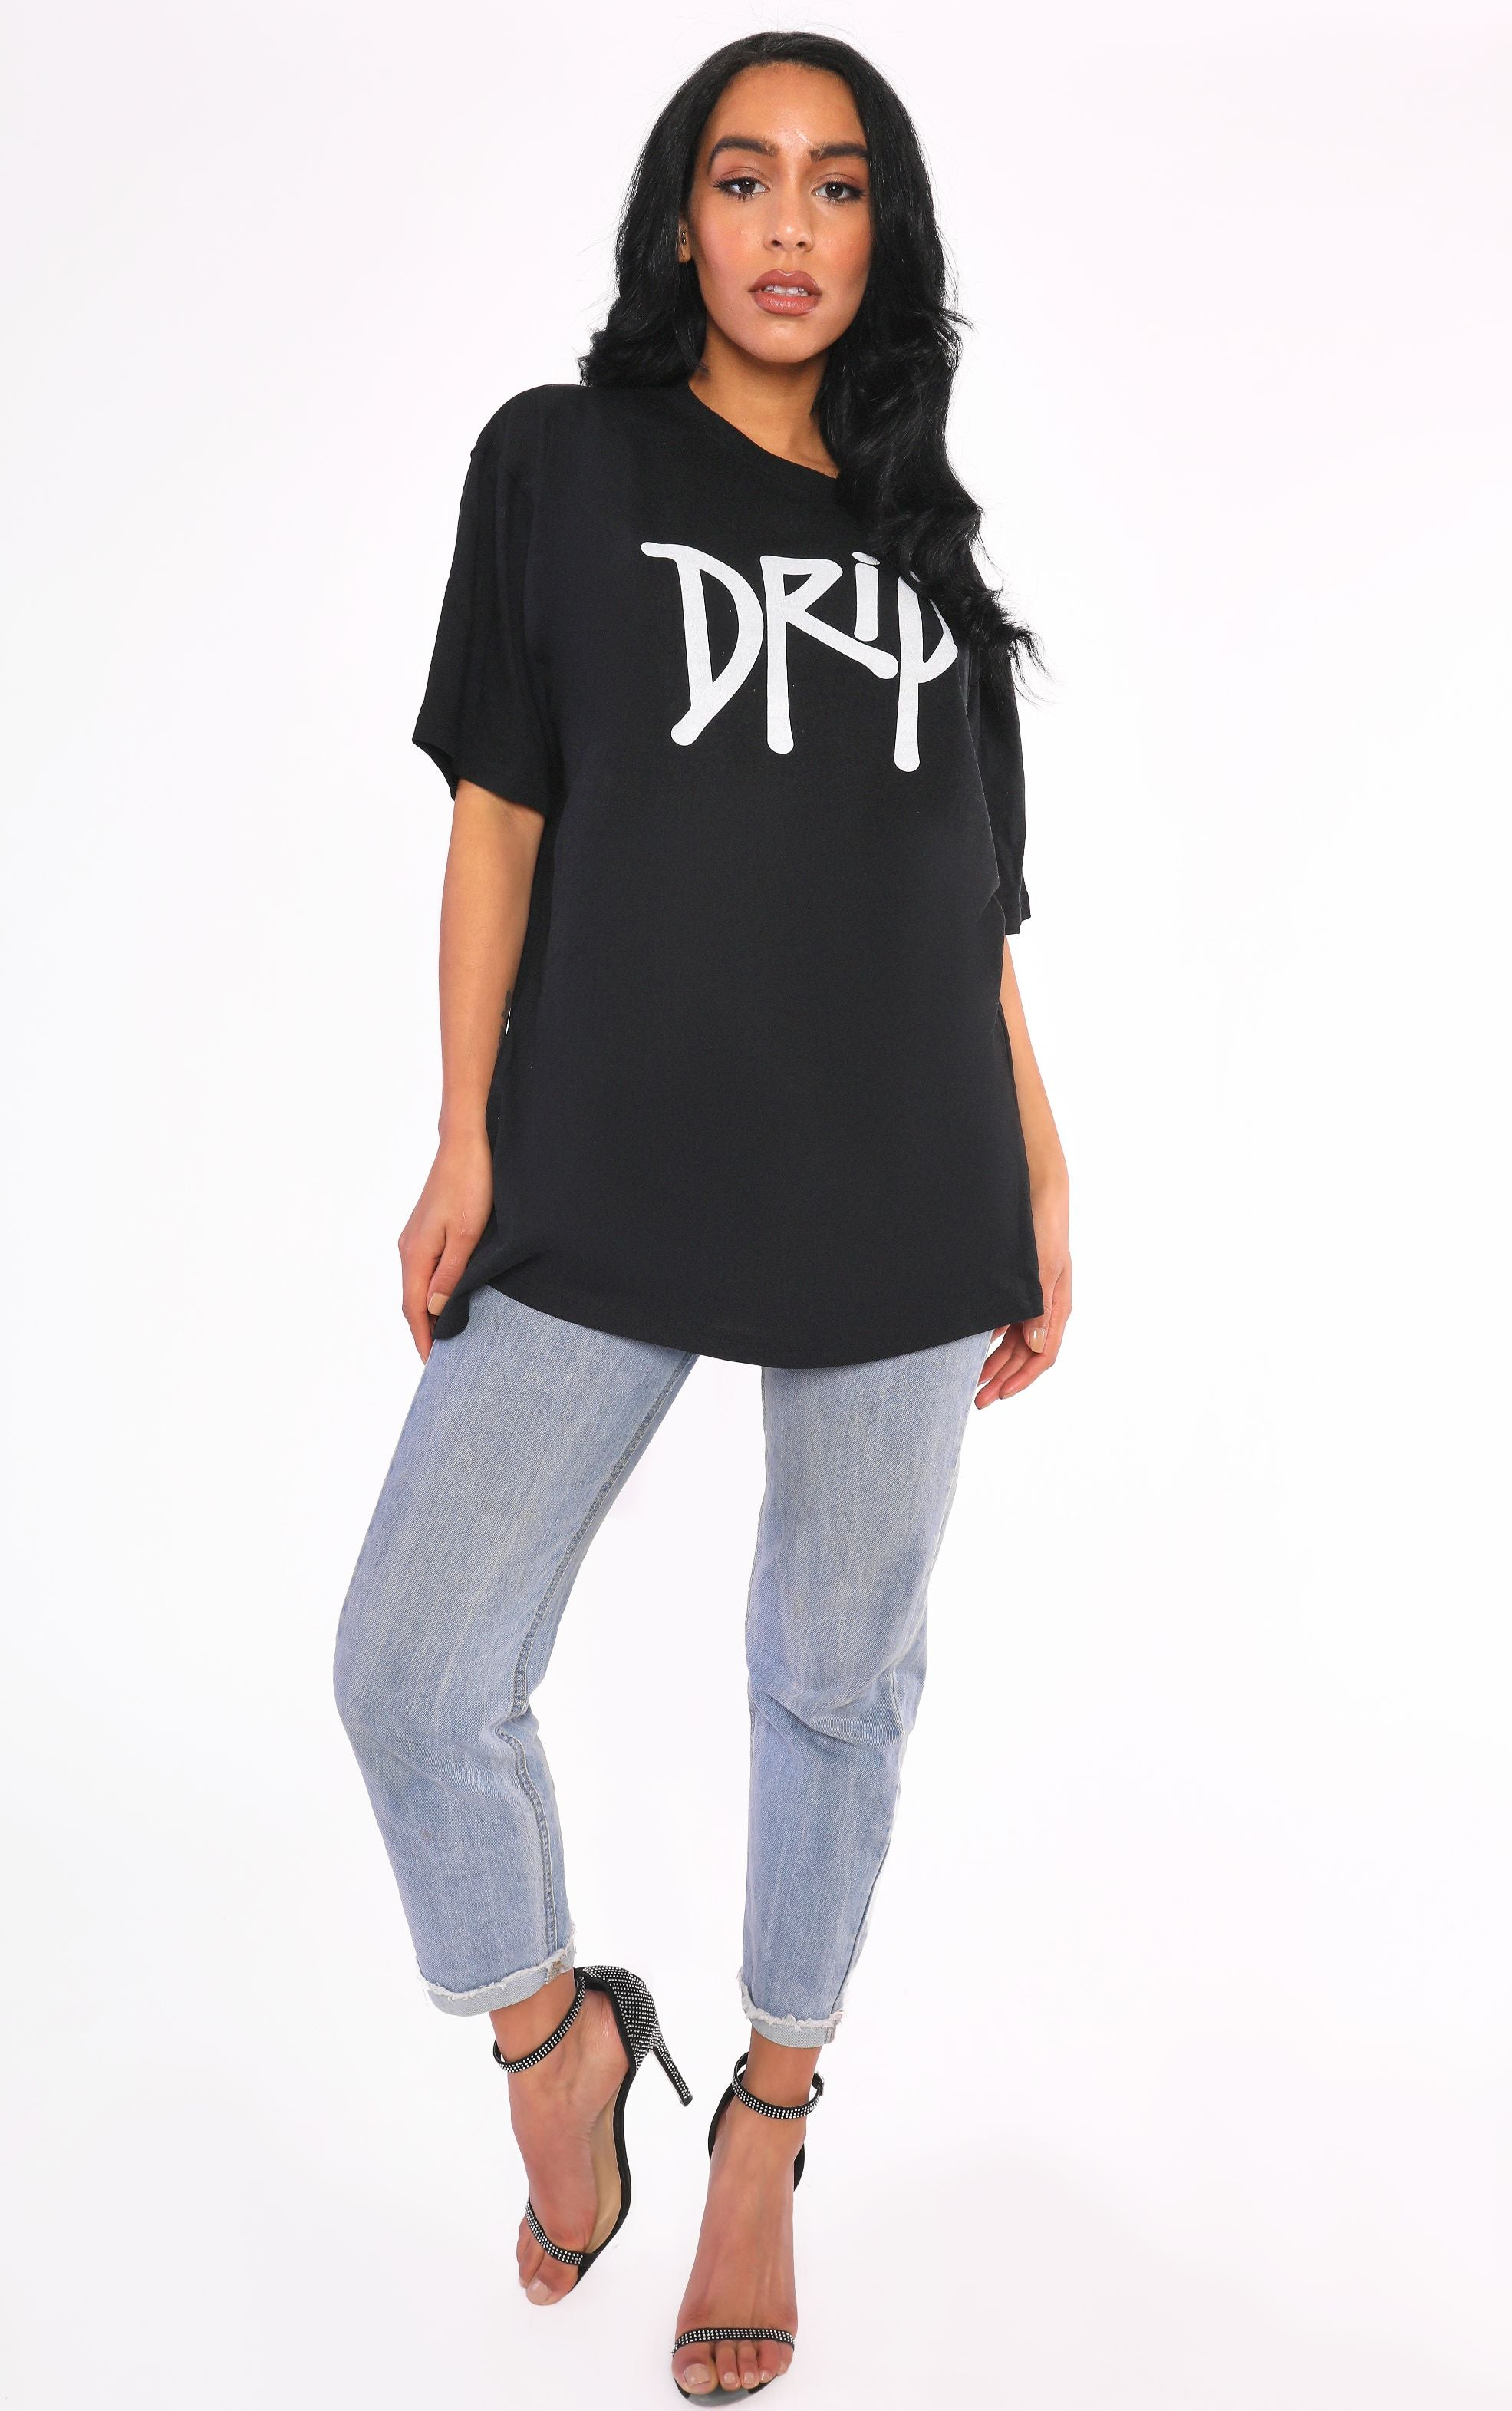 Drip Spray Paint Graffiti Wall Art Black T Shirt